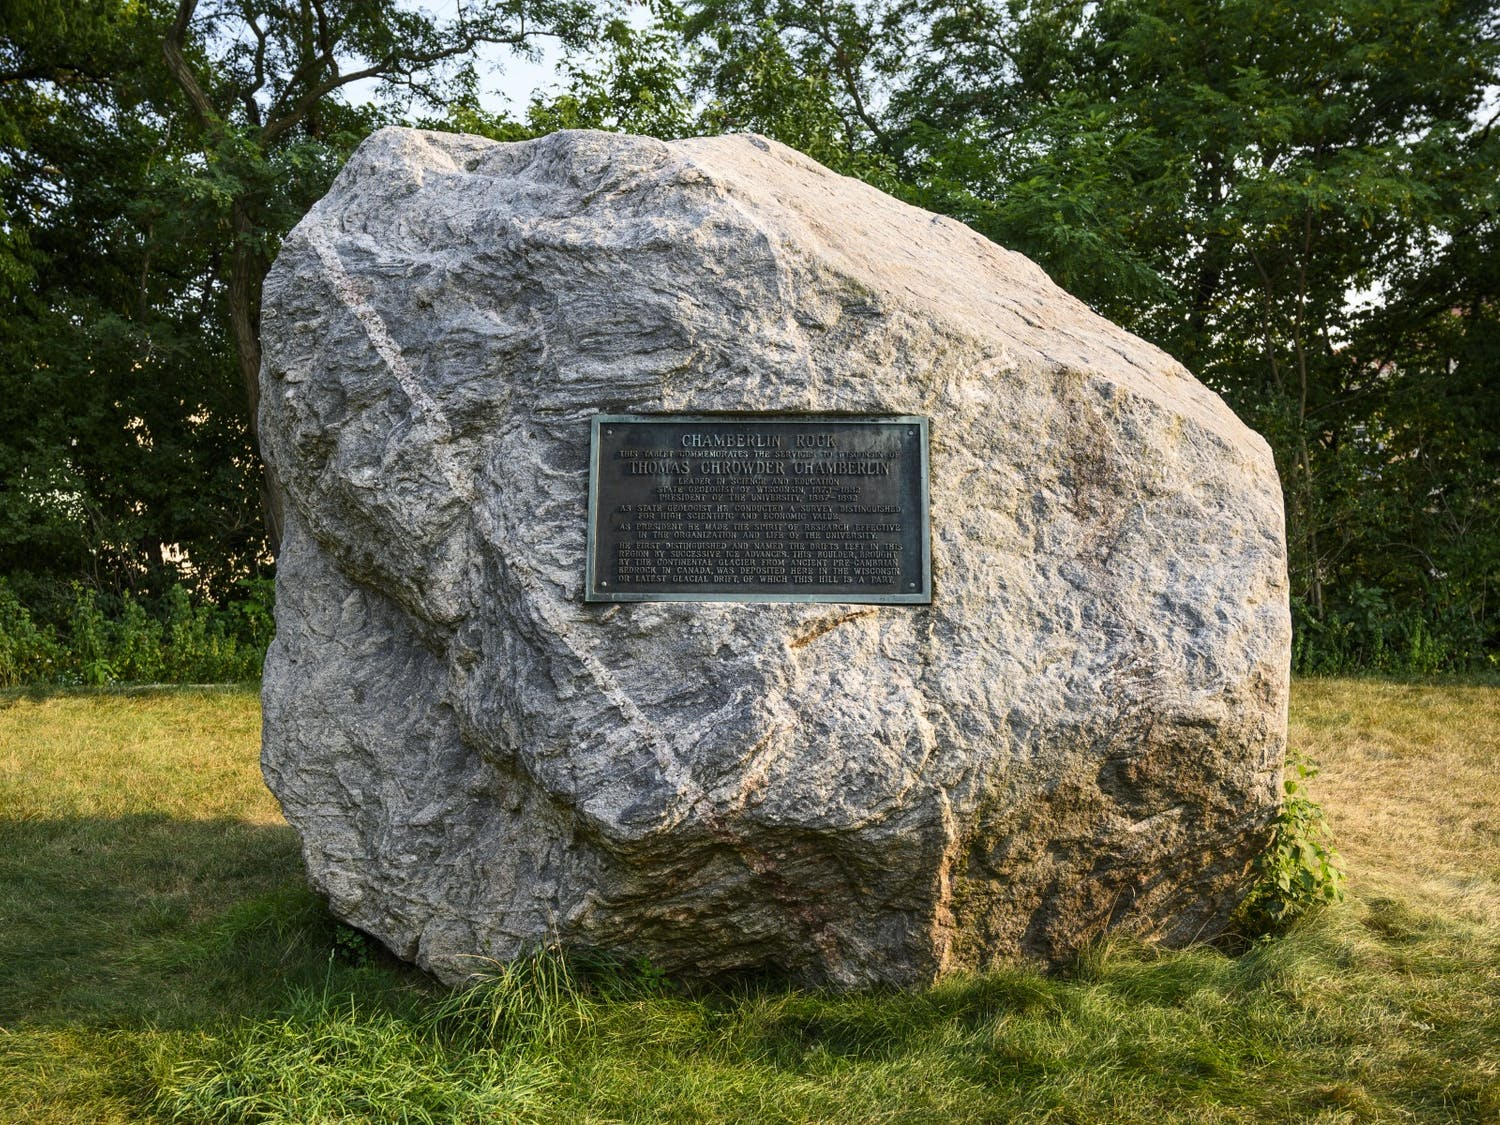 The rock was commonly referred to by a racial slur from the 1920s through the 1950s and long served as a symbol of racial oppression in the UW community.